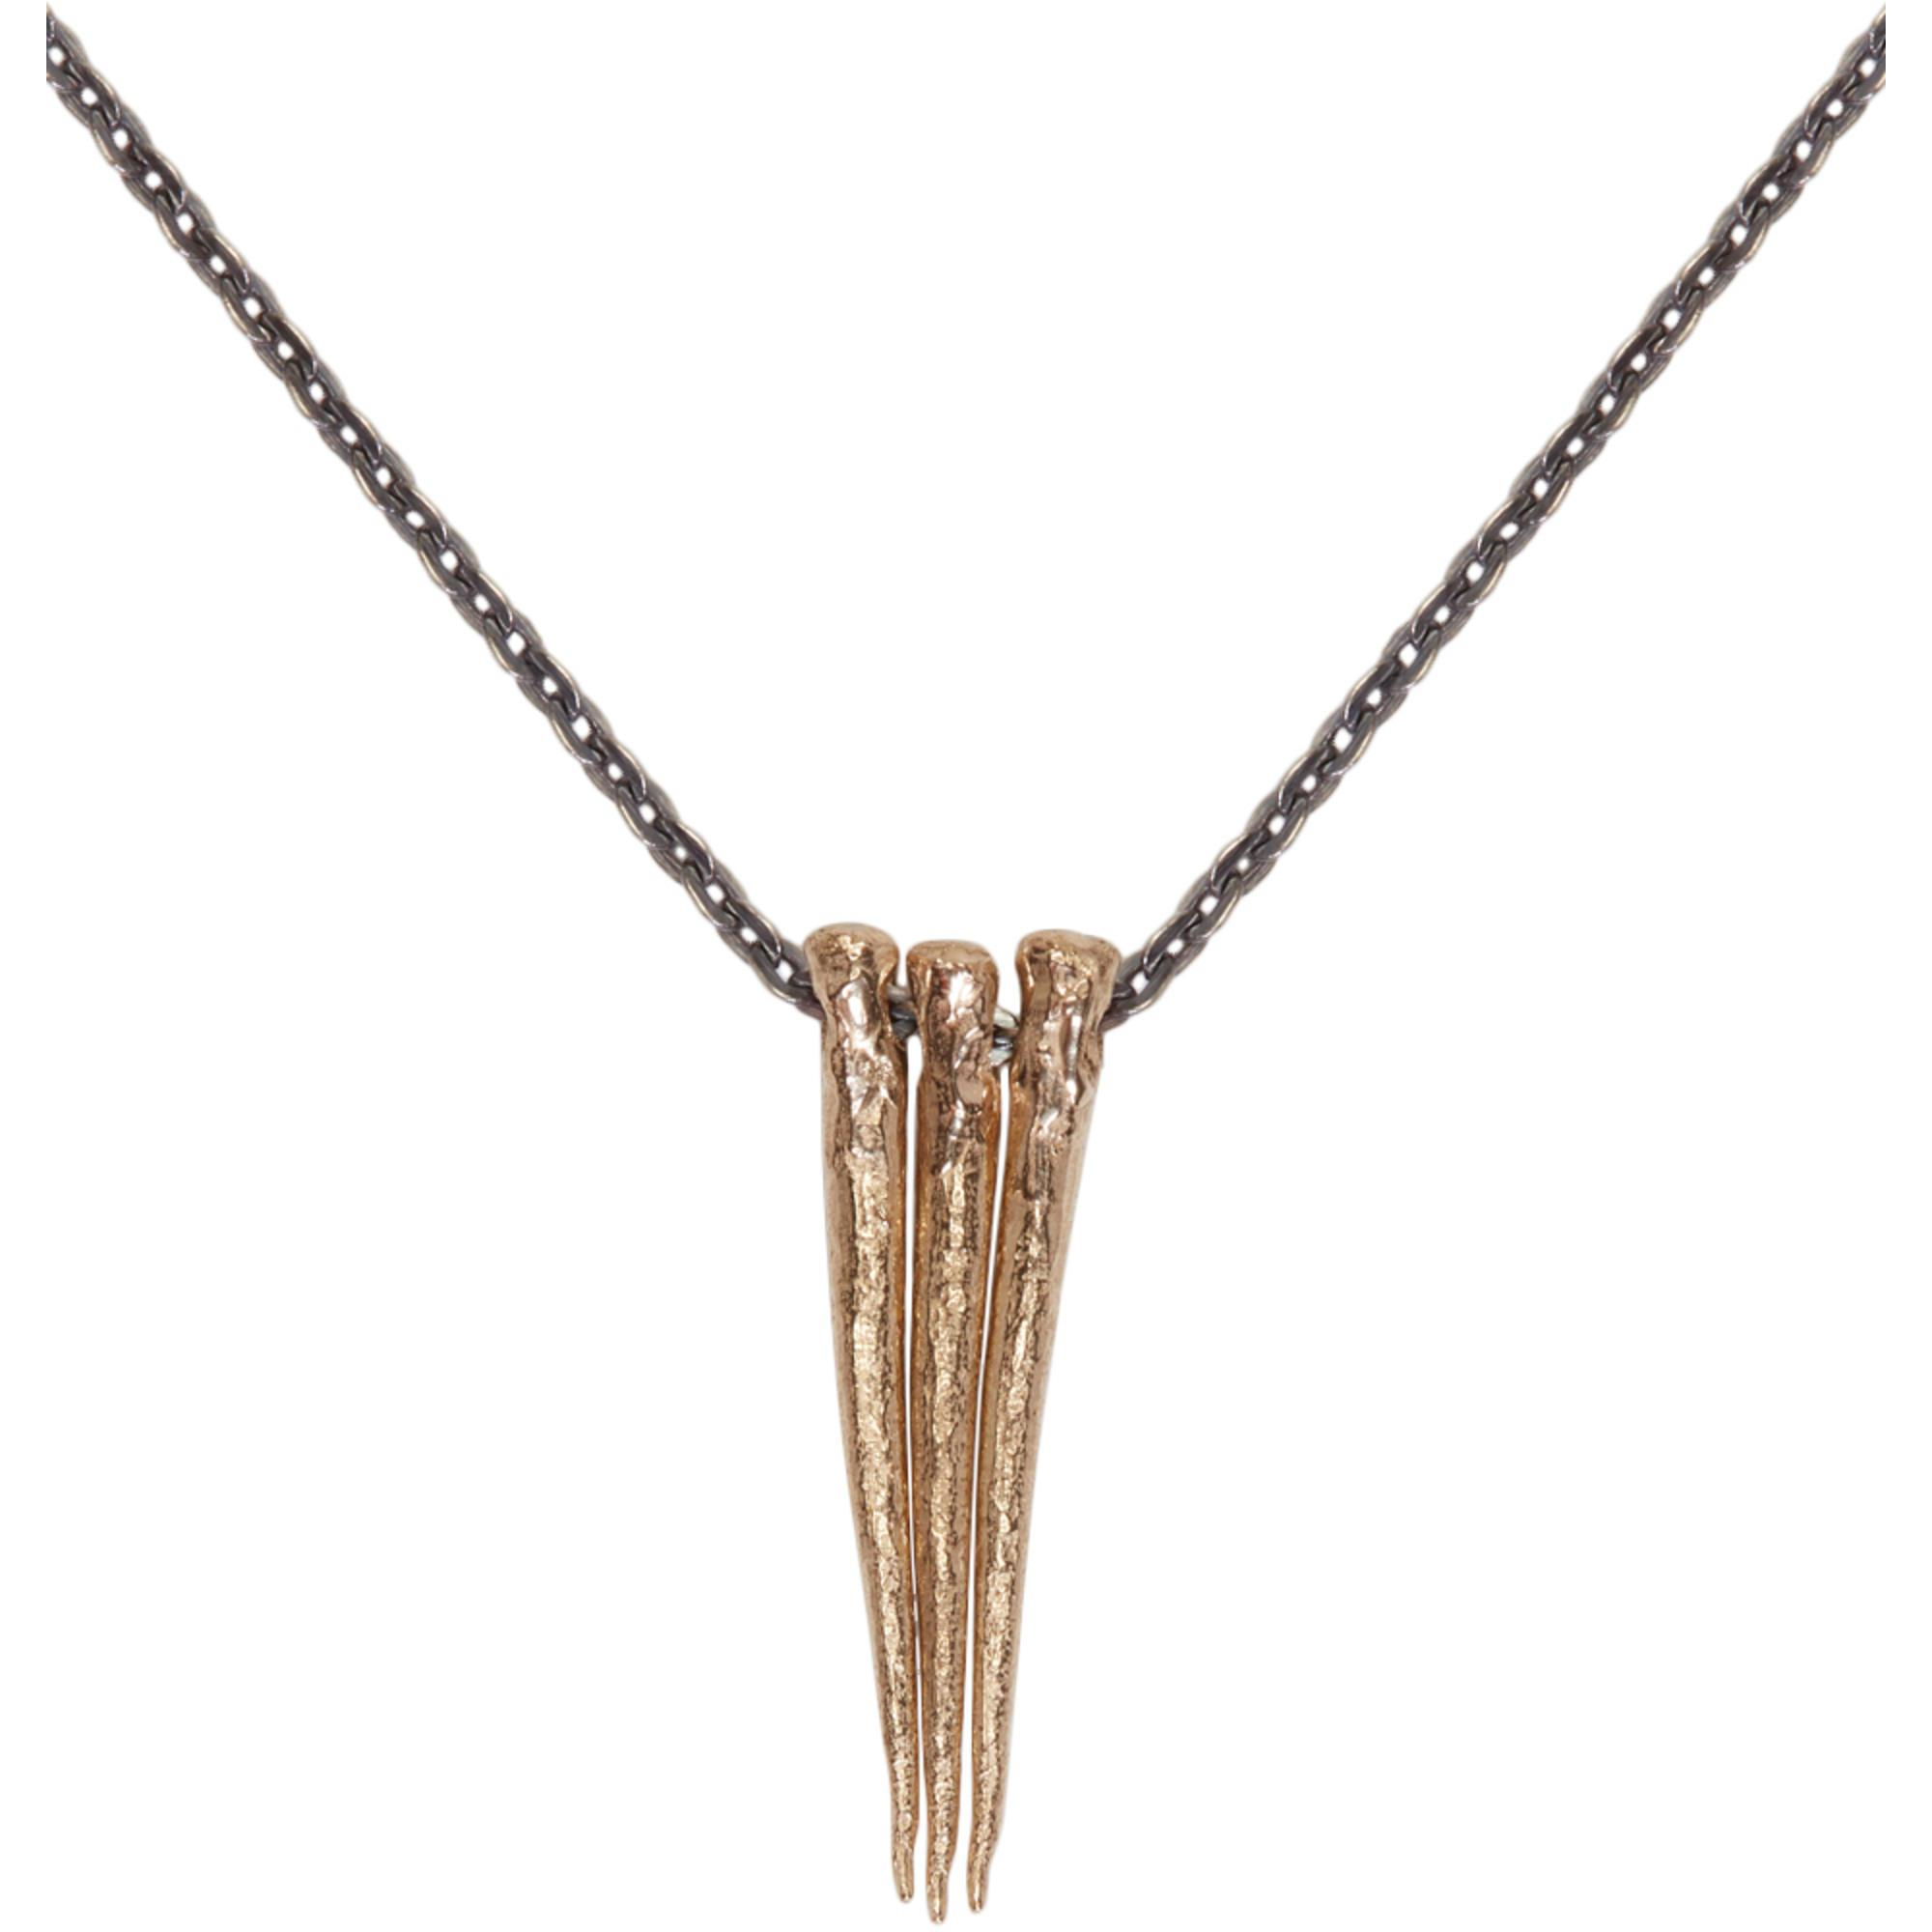 Gold Triple Thorn Necklace Pearls Before Swine 5svbn9yG3